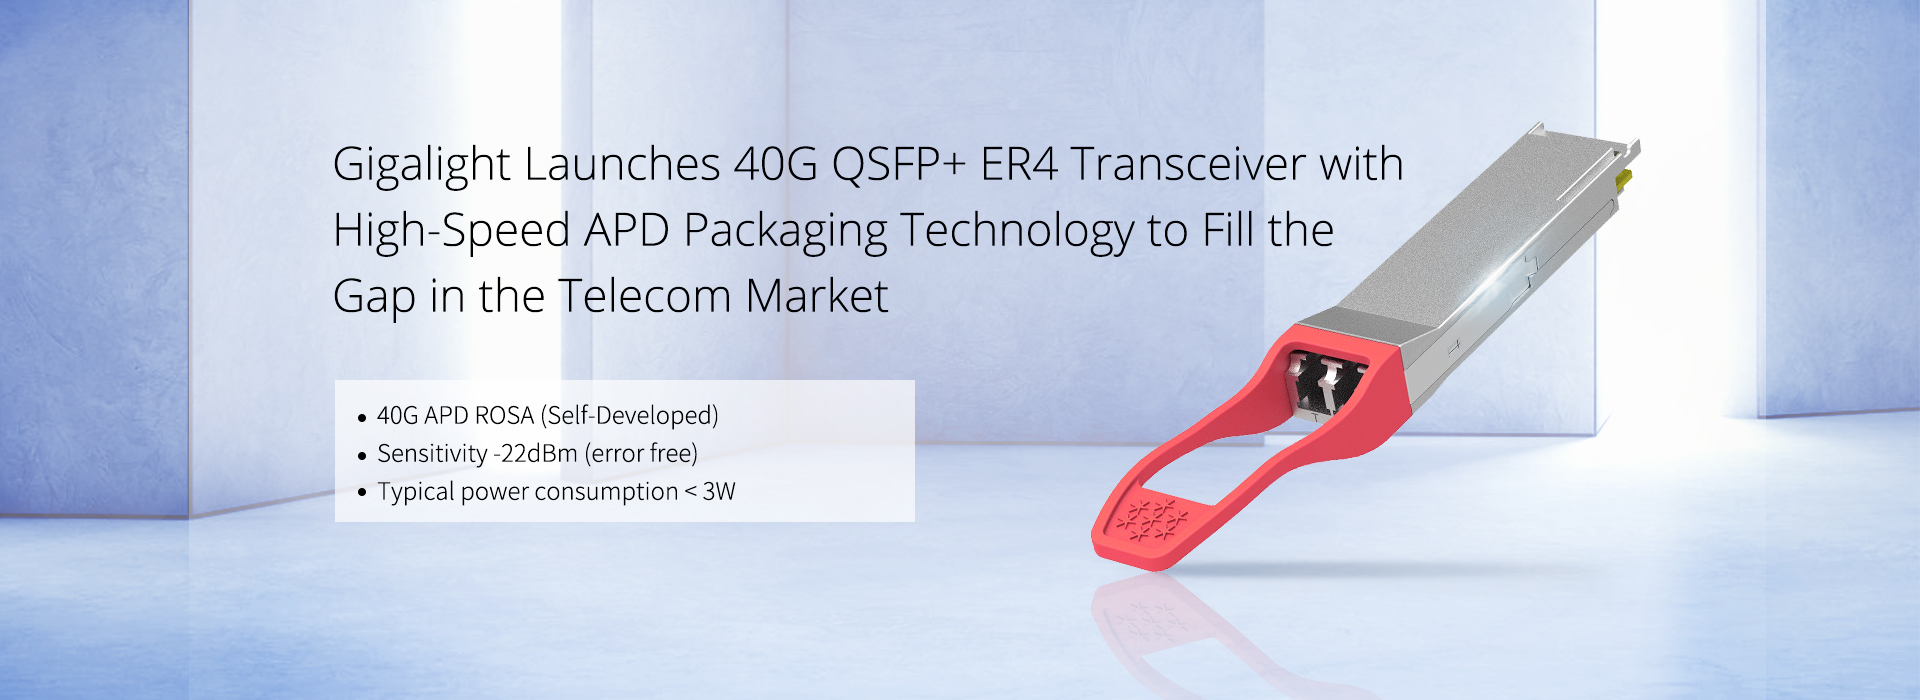 Gigalight Launches 40G QSFP+ ER4 Transceiver with High-Speed APD Packaging Technology to Fill the Gap in the Telecom Market